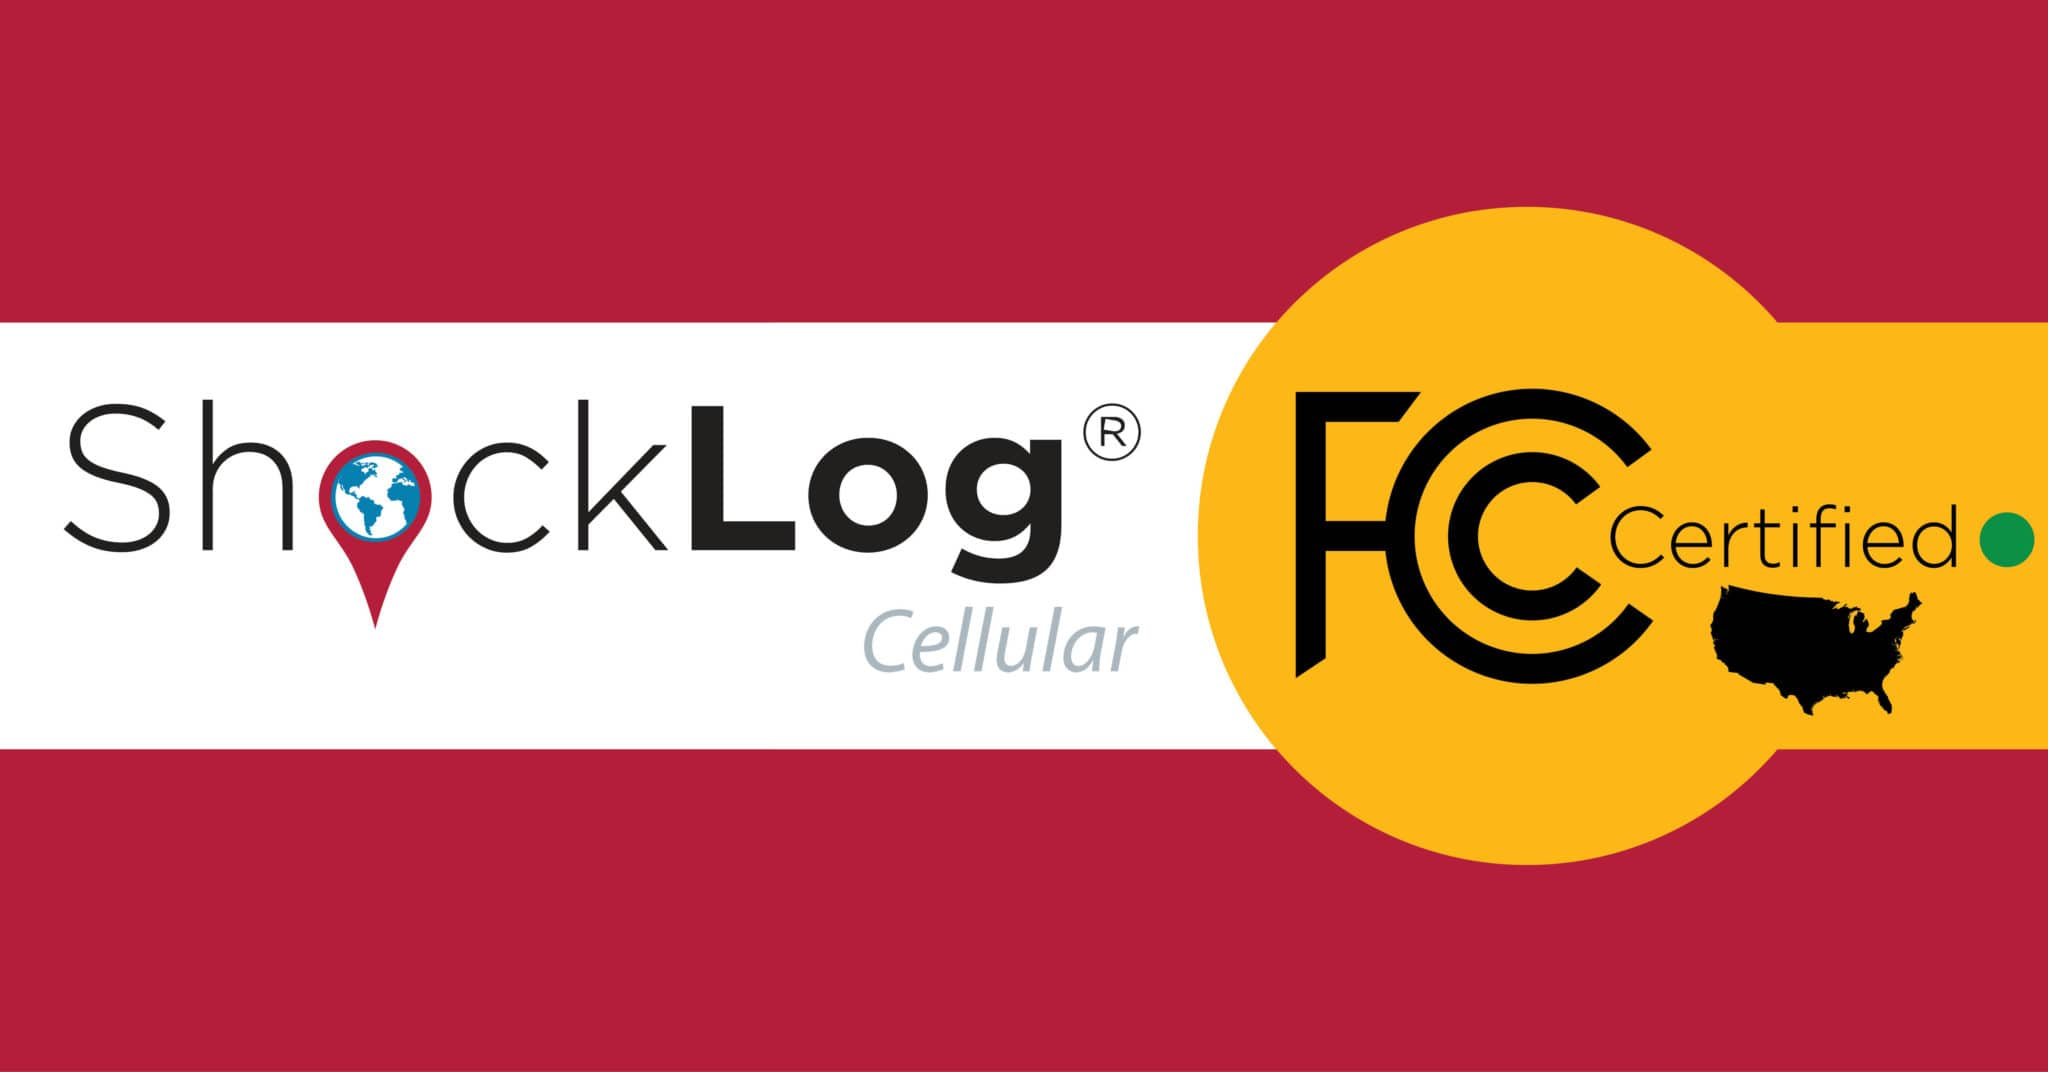 SpotSee's ShockLog Cellular Is Certified to Be Sold in the United States